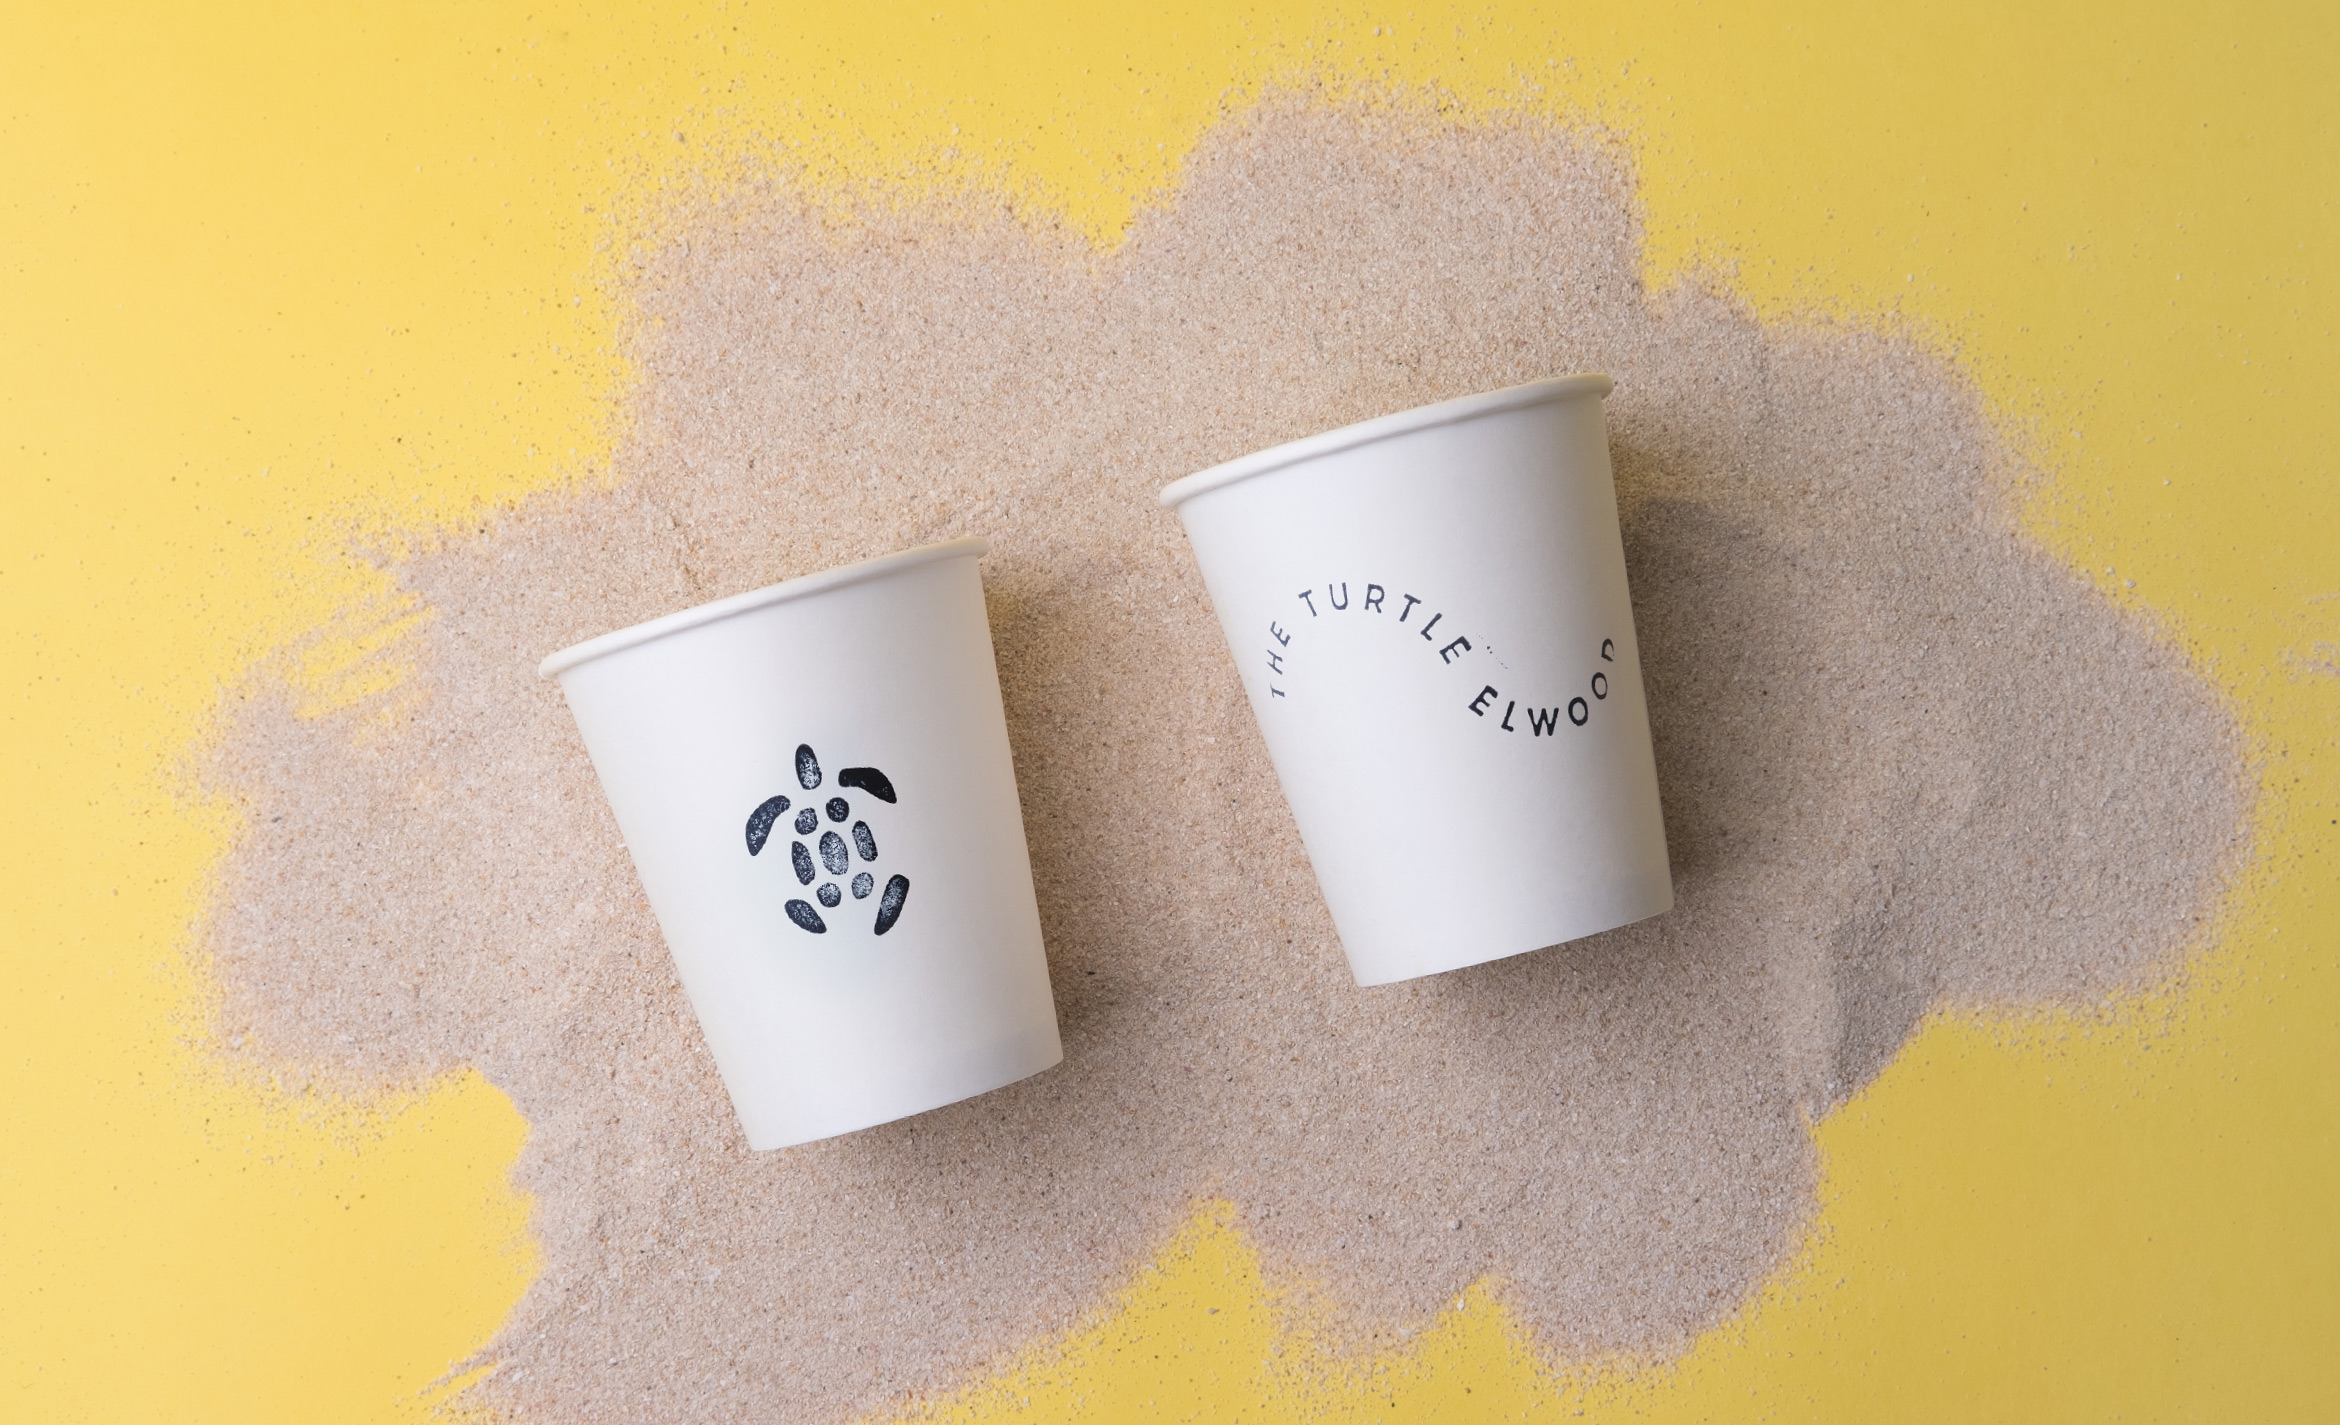 Turtle_cups